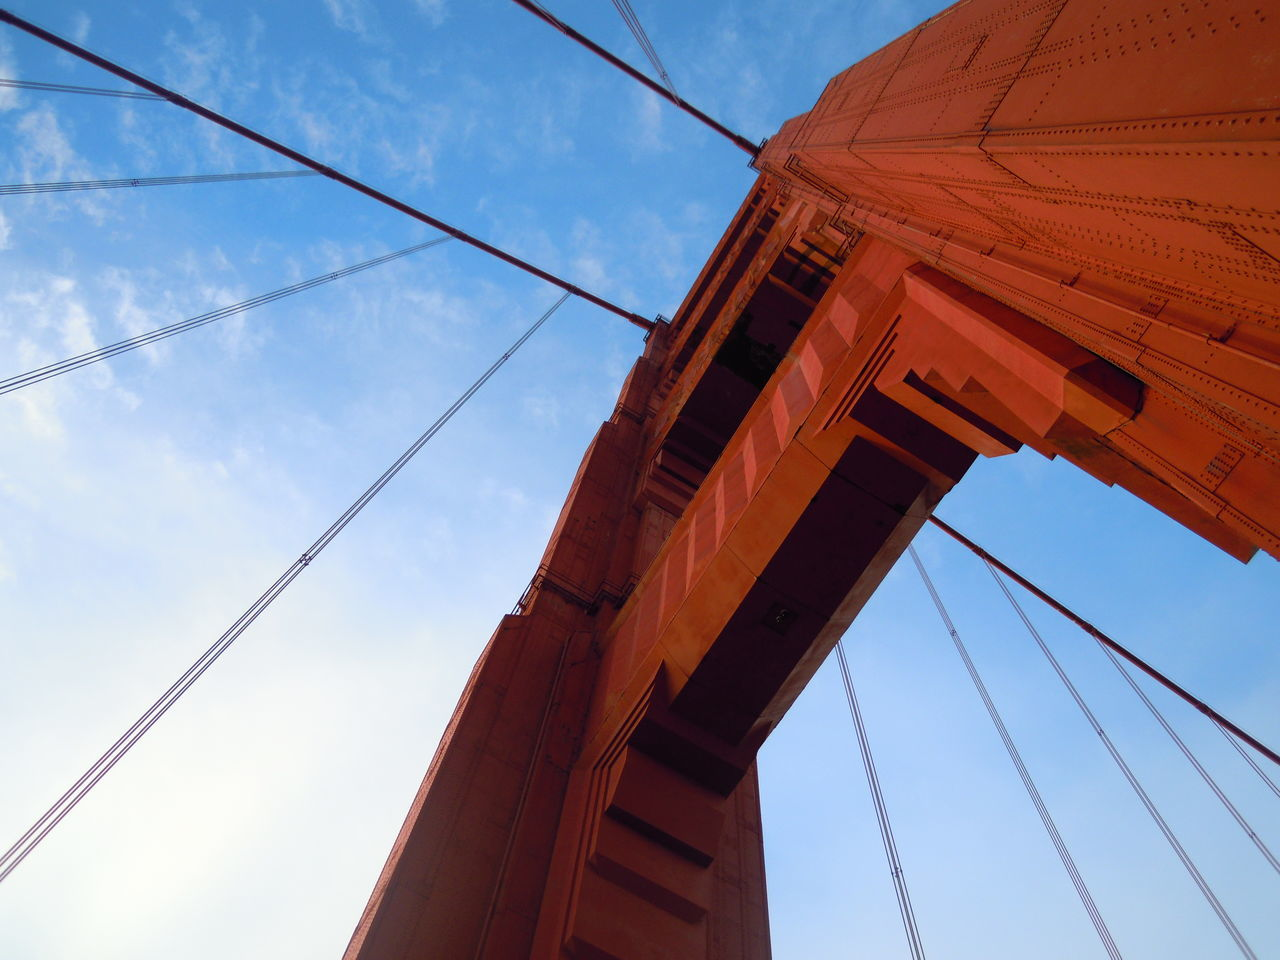 Tiny Humans. Blue Sky Built Structure Cable Connection Construction Engineering Golden Gate Bridge International Landmark Low Angle View Structure Market Bestsellers June 2016 Bestsellers